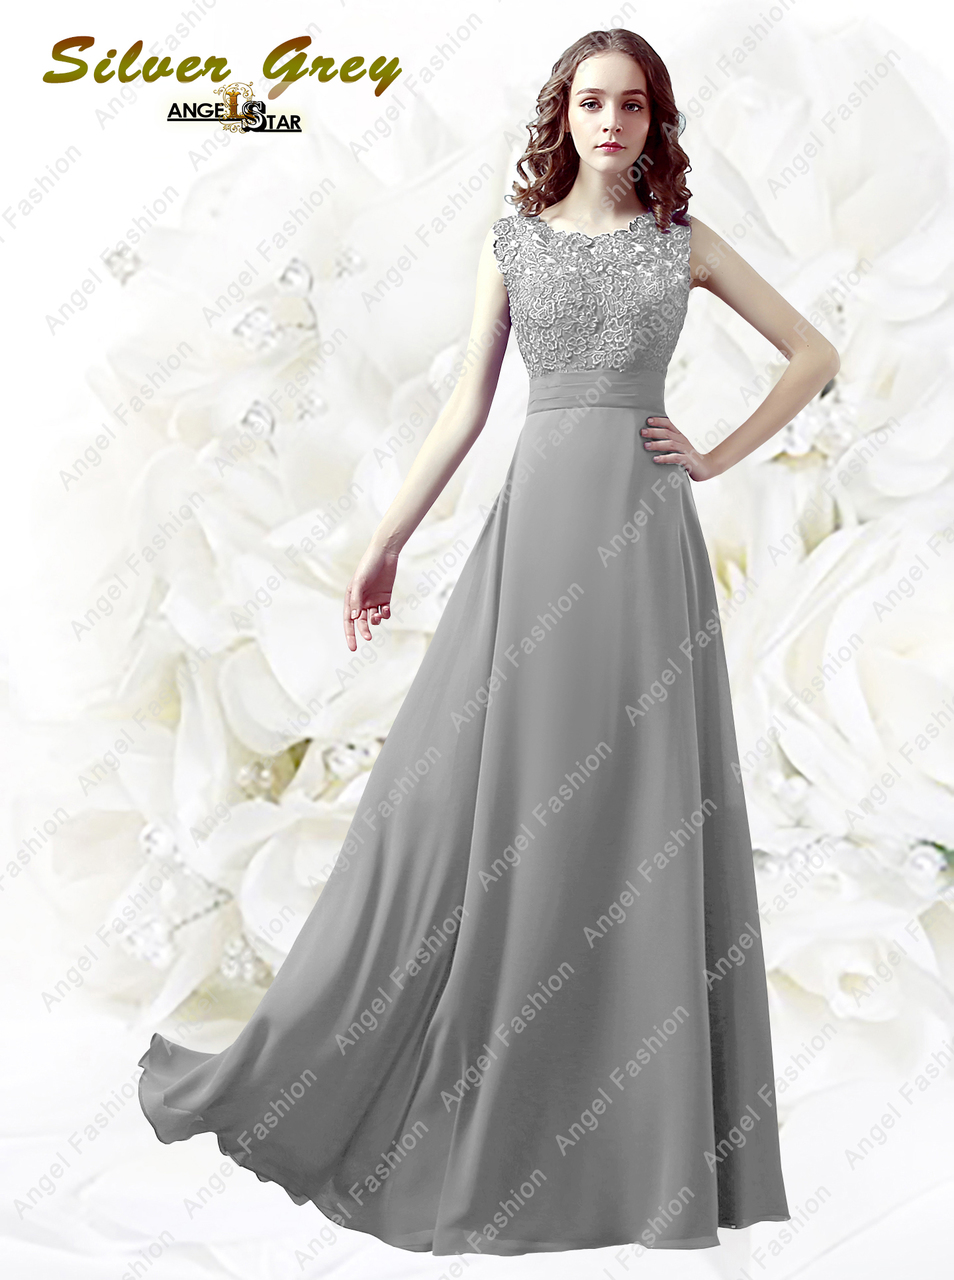 6793b63938b Floor-length Lace back   Georgette Bridesmaid Dress Petite Sheath Column  Bateau - Angel Fashion ltd